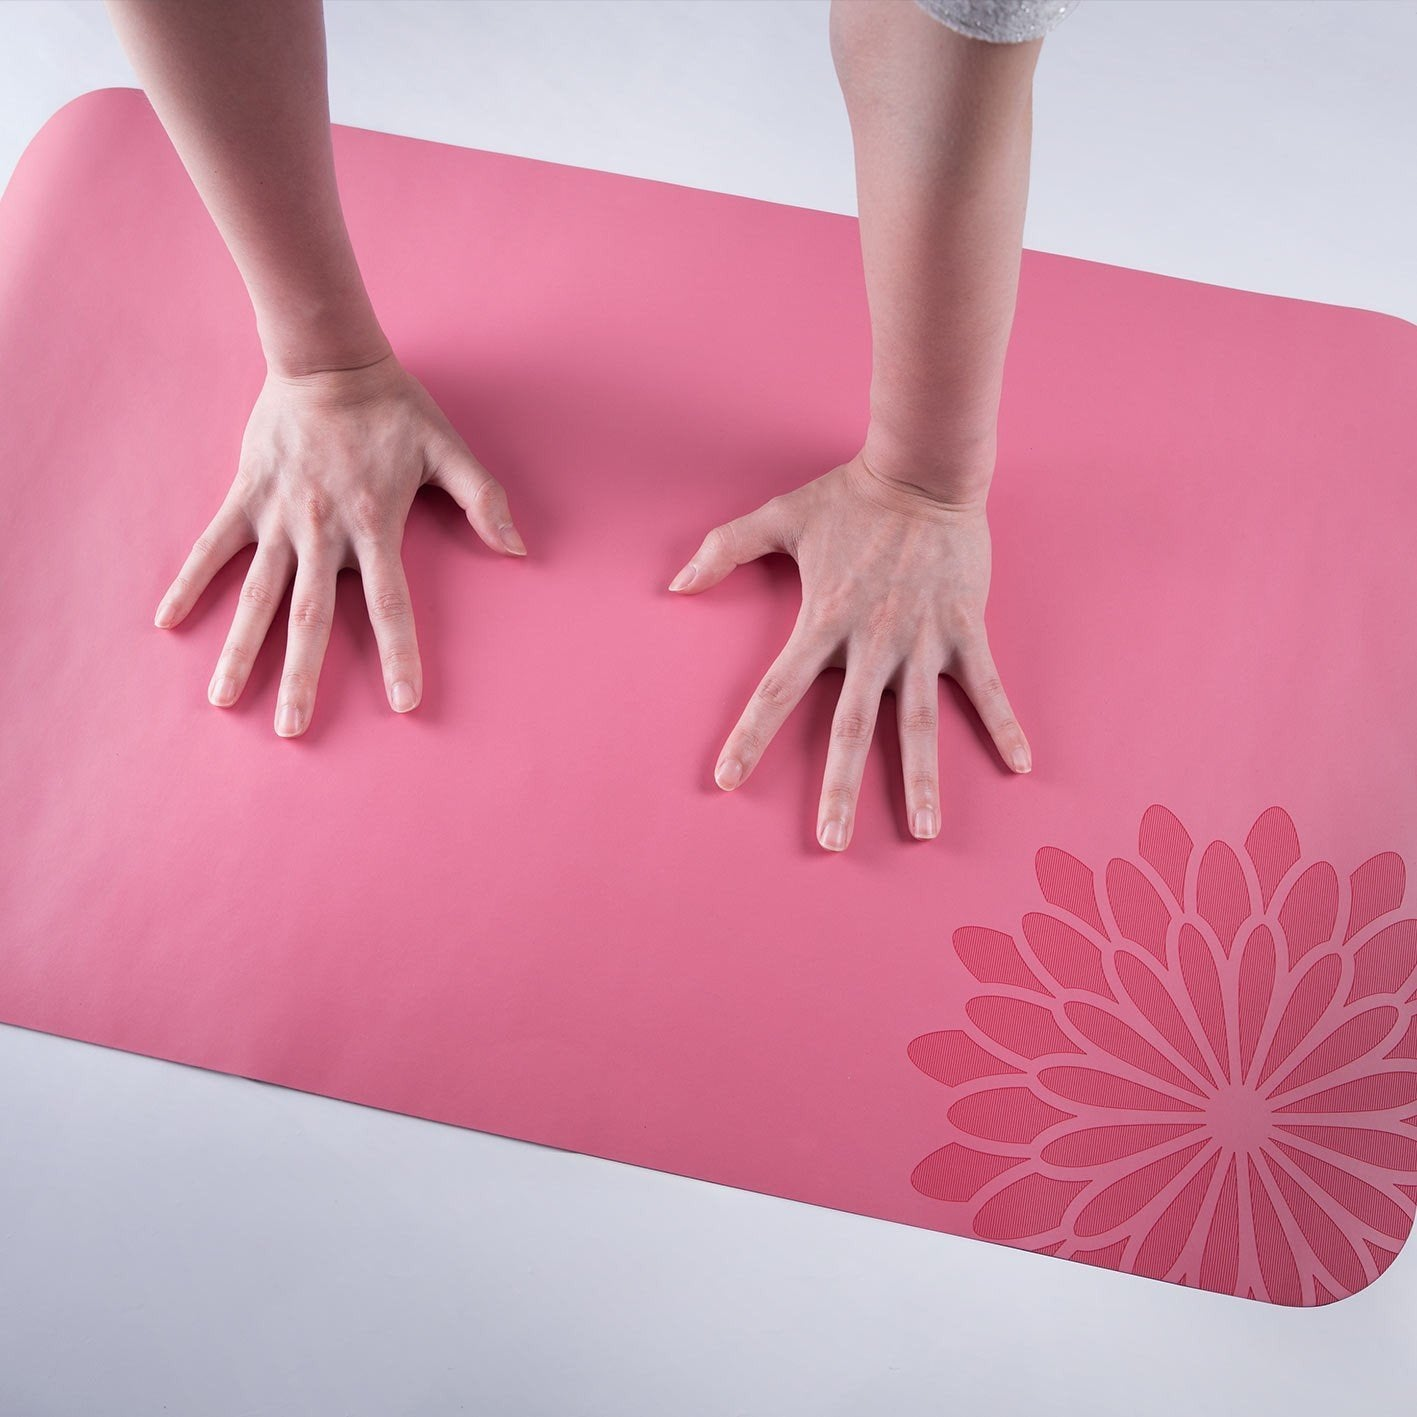 easyoga Breathin' Space Pro Mat - Hand Size - R3 Rosy Red